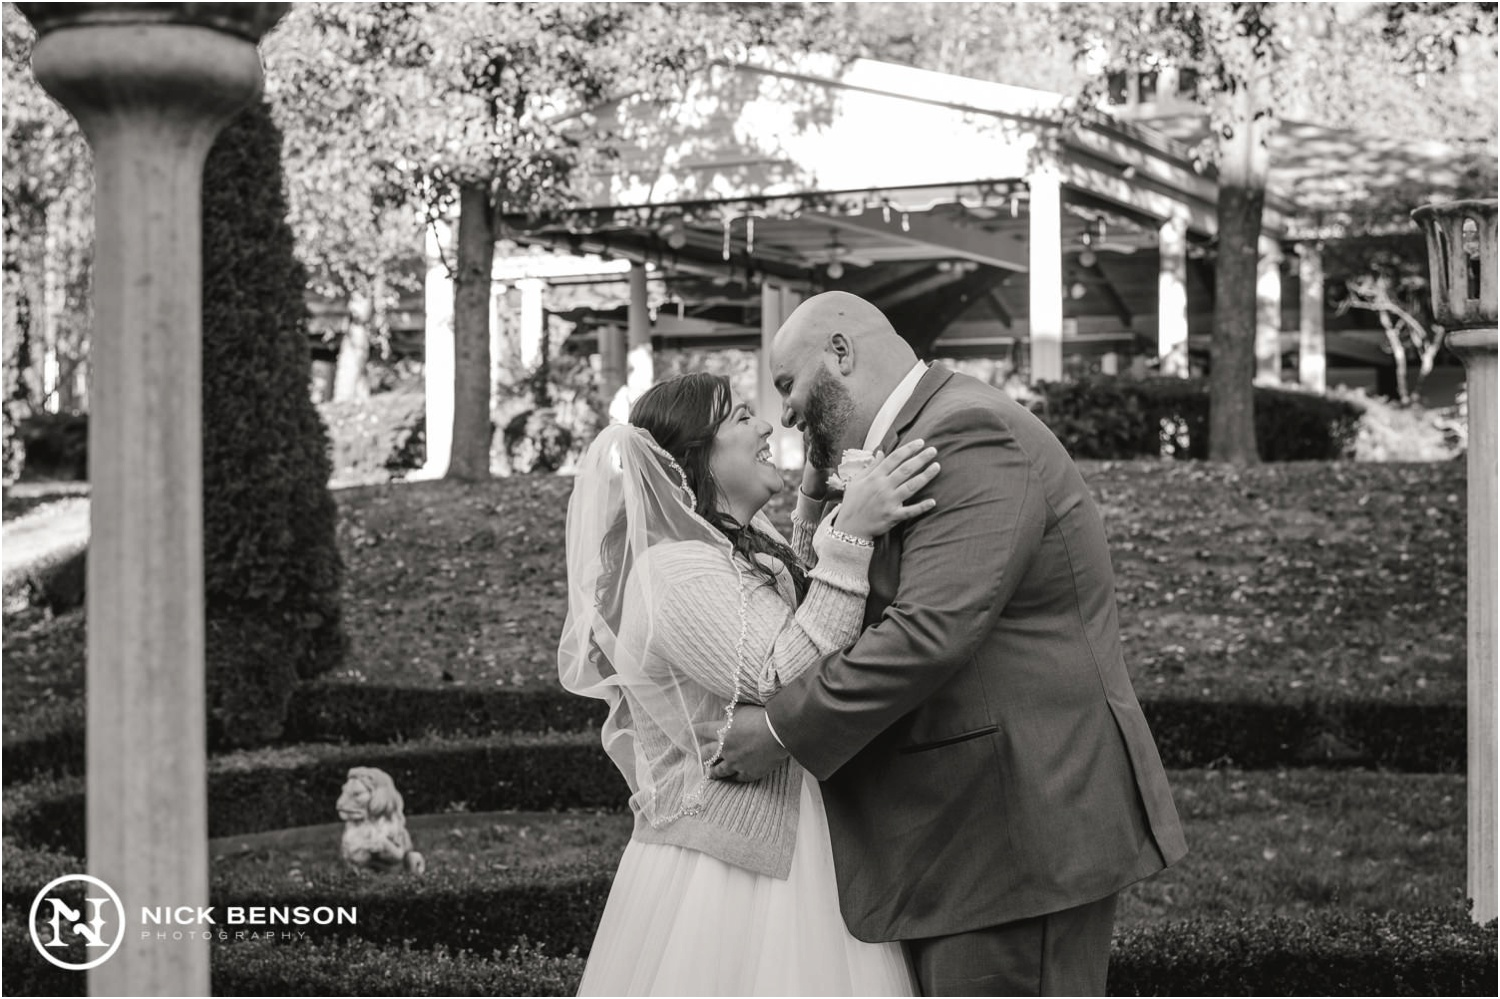 CT Wedding Photographer, First Look, Nick Benson Photography